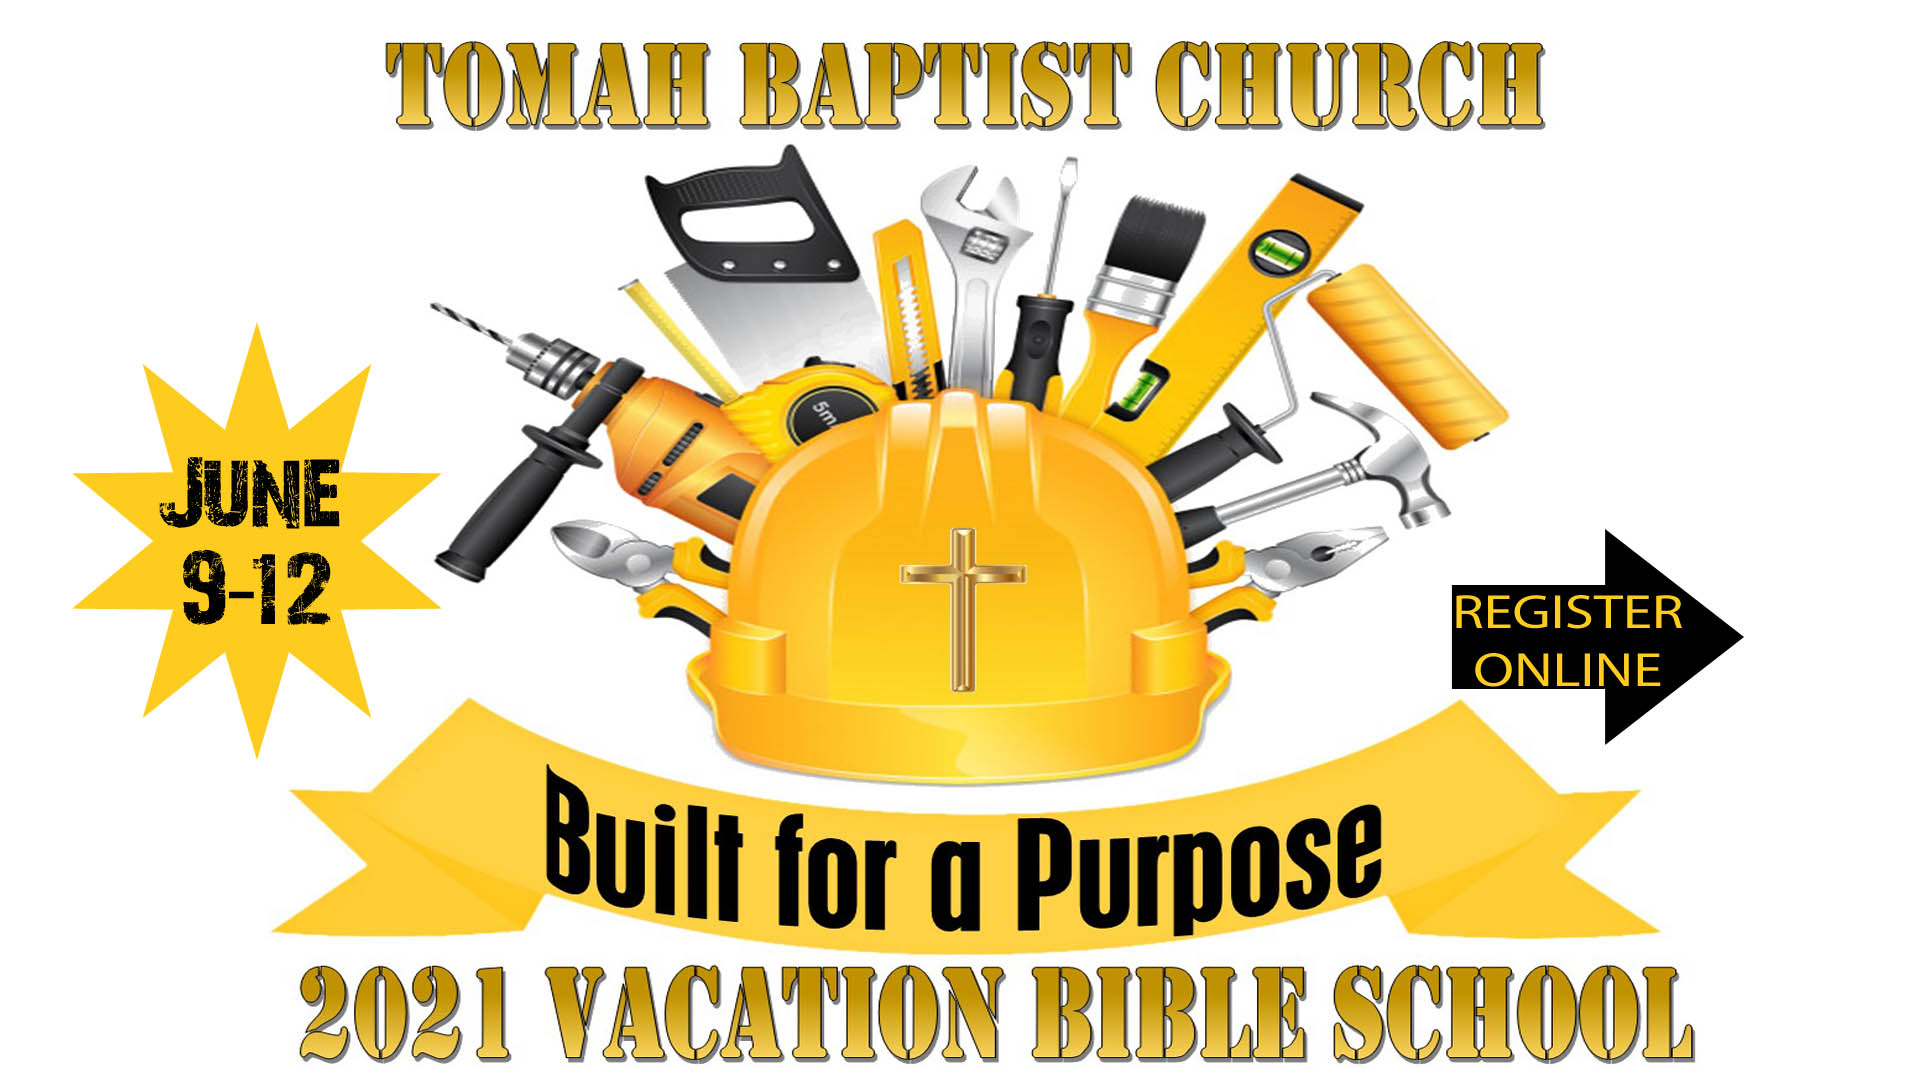 Vacation Bible School 2021 Built for a Purpose